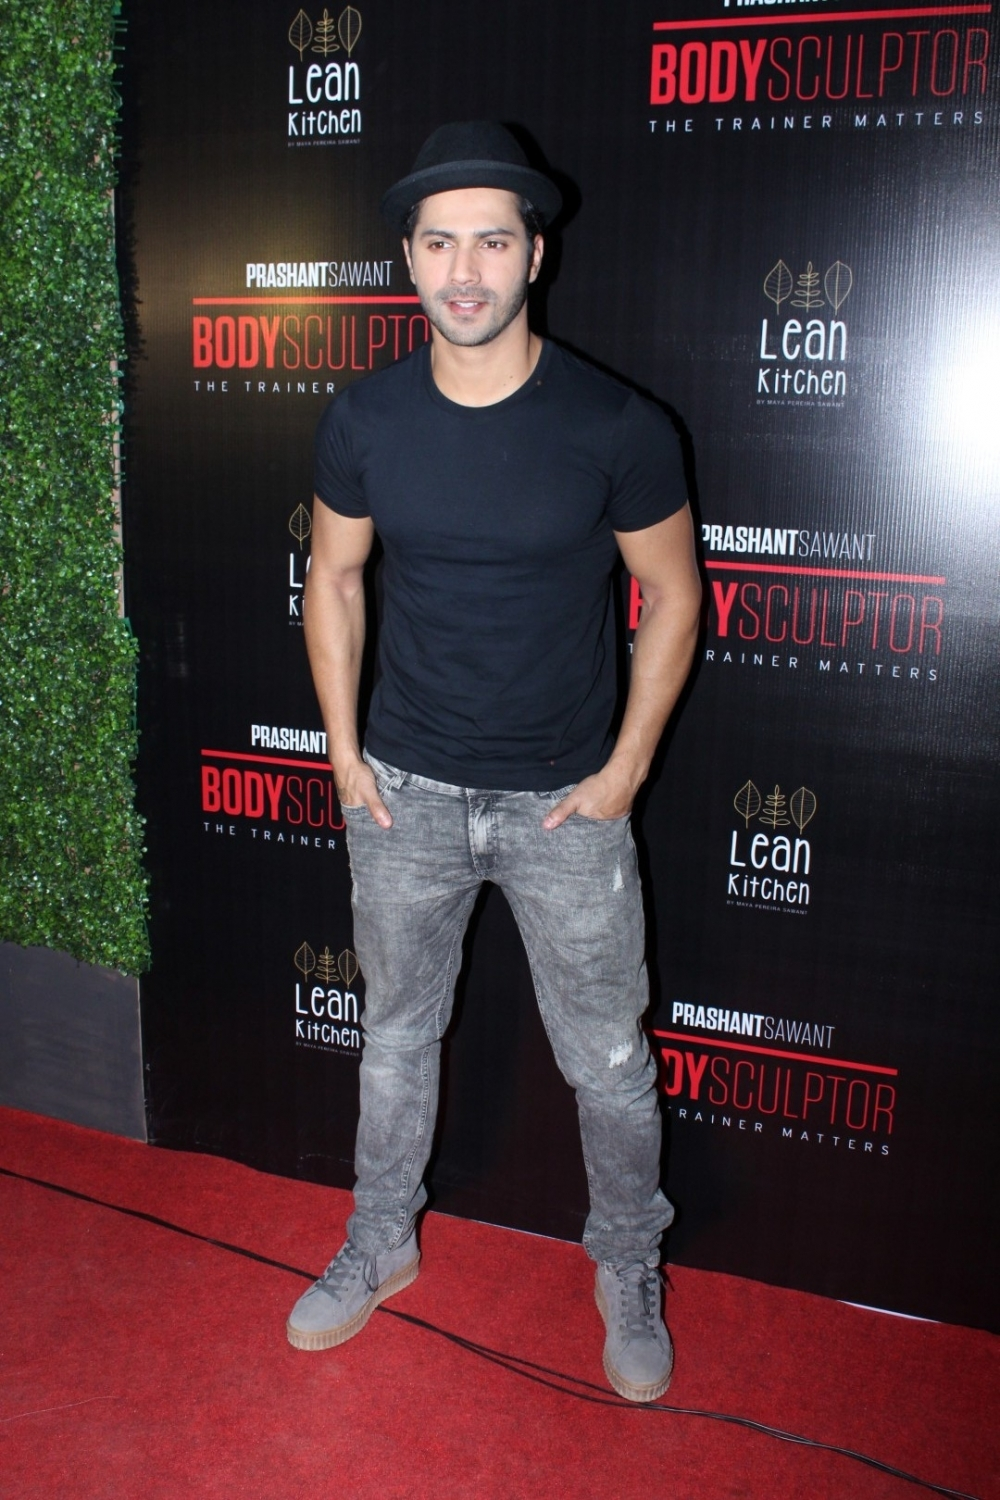 Mumbai: Actor Varun Dhawan during the launch party of Body Sculptor Gym in Mumbai on Jan 28, 2017. (Photo: IANS)